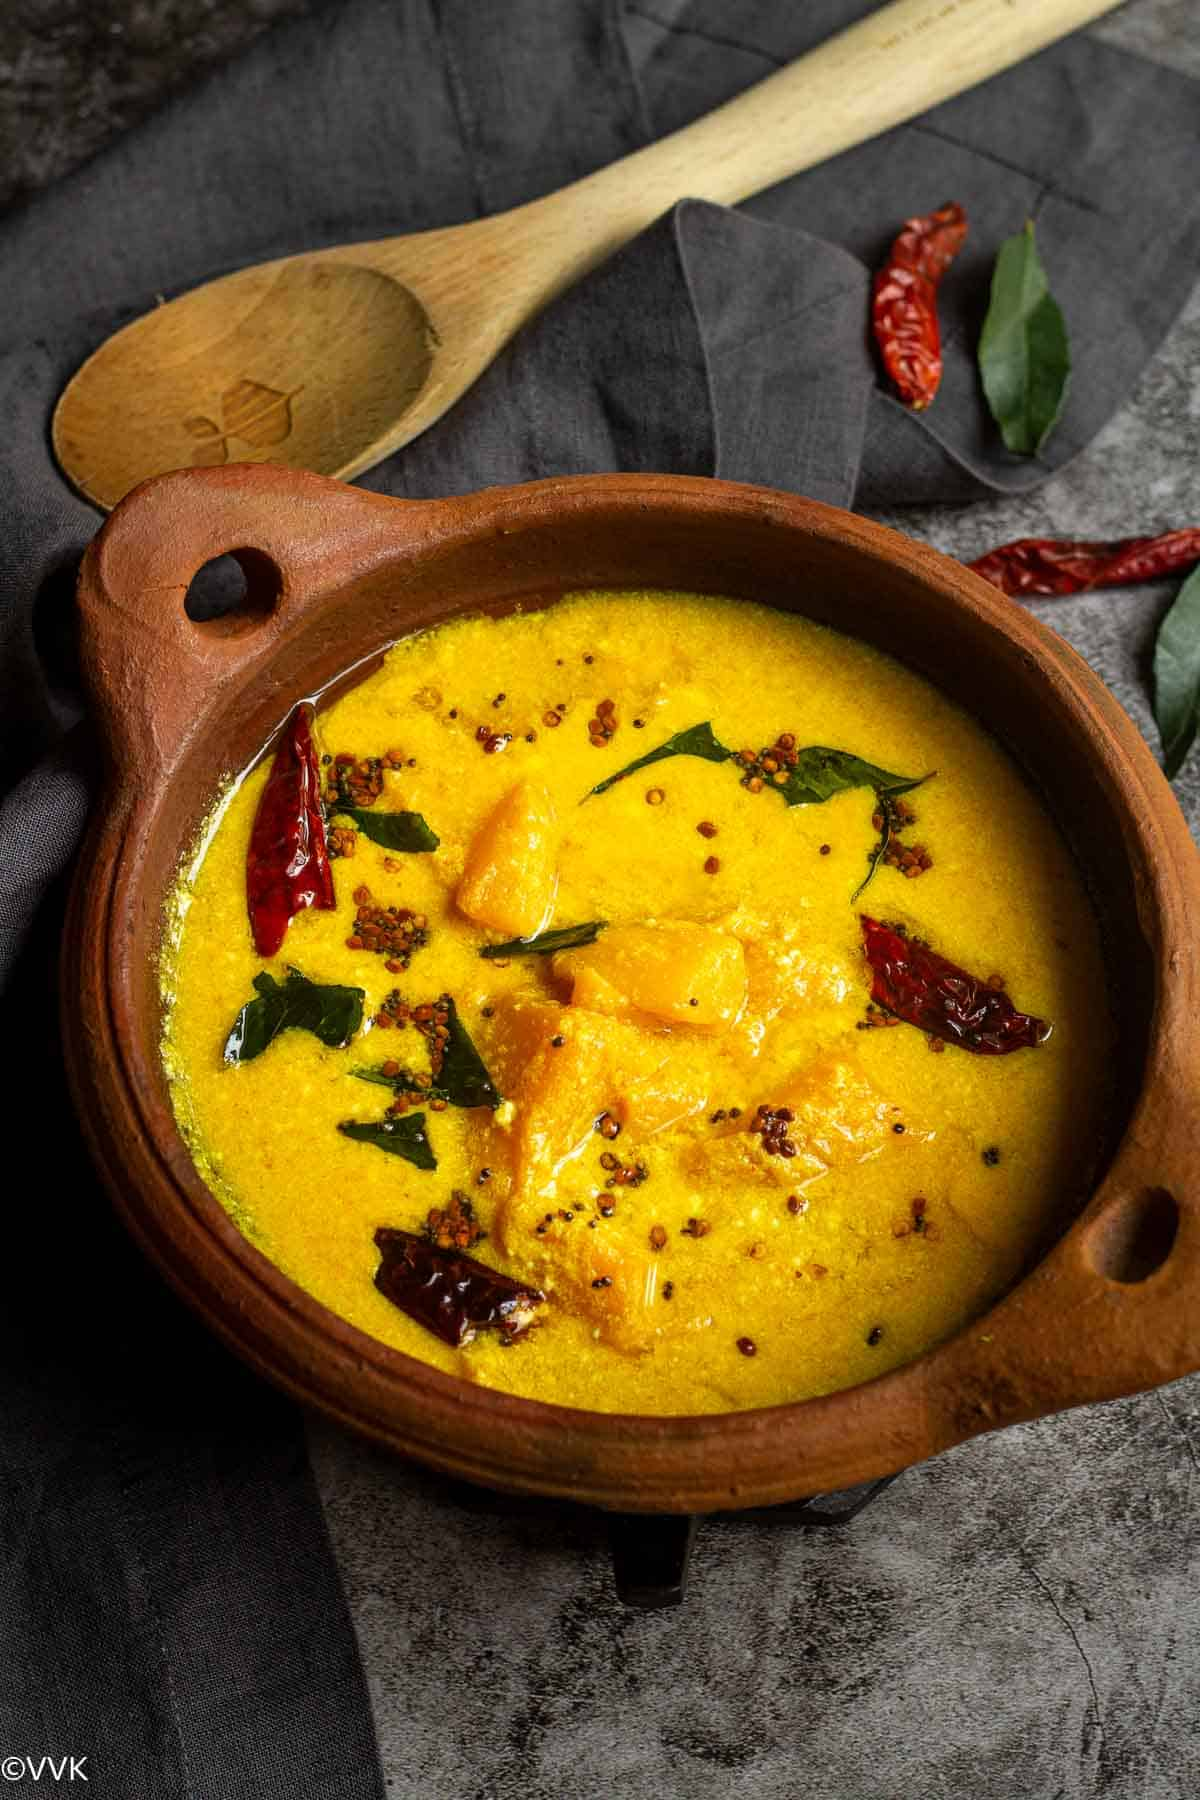 kerala style mambazha pulissery served in clay pot with a ladle on the side and few dried red chilies and curry leaves on the side